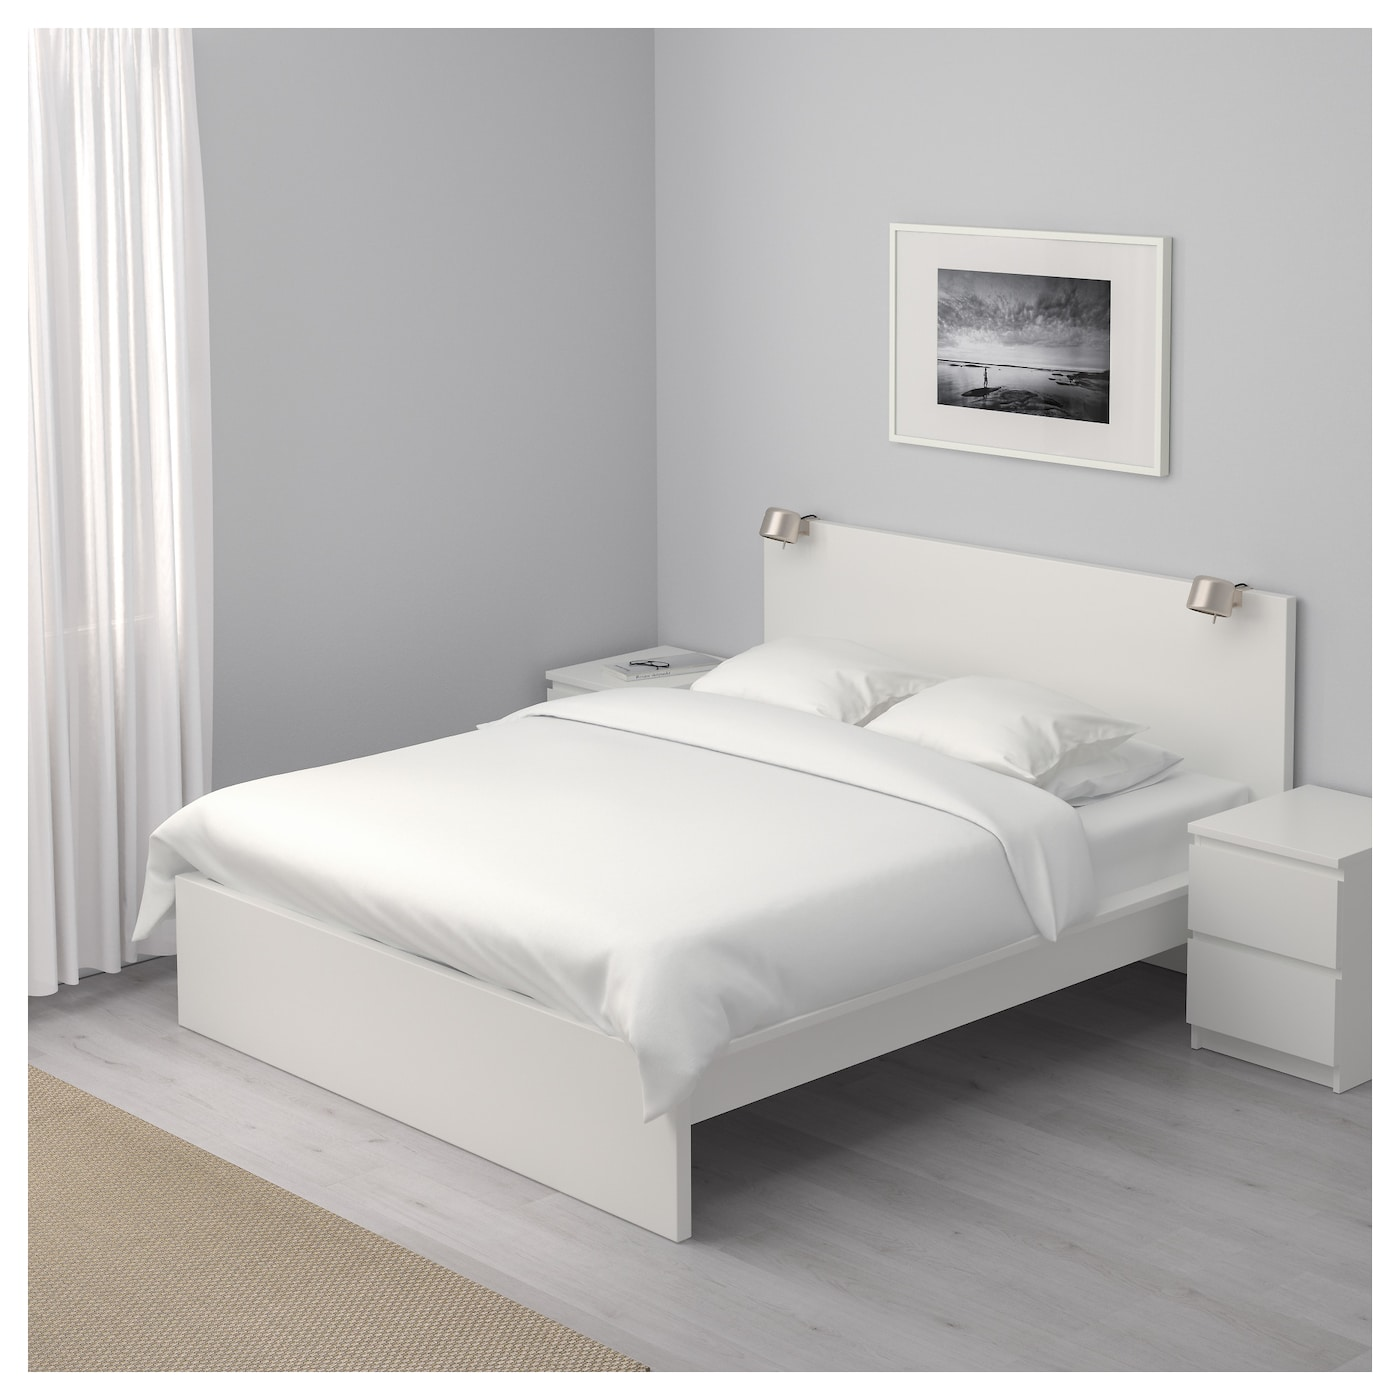 Malm bed frame high white lur y standard double ikea for Dormitorio 180x200